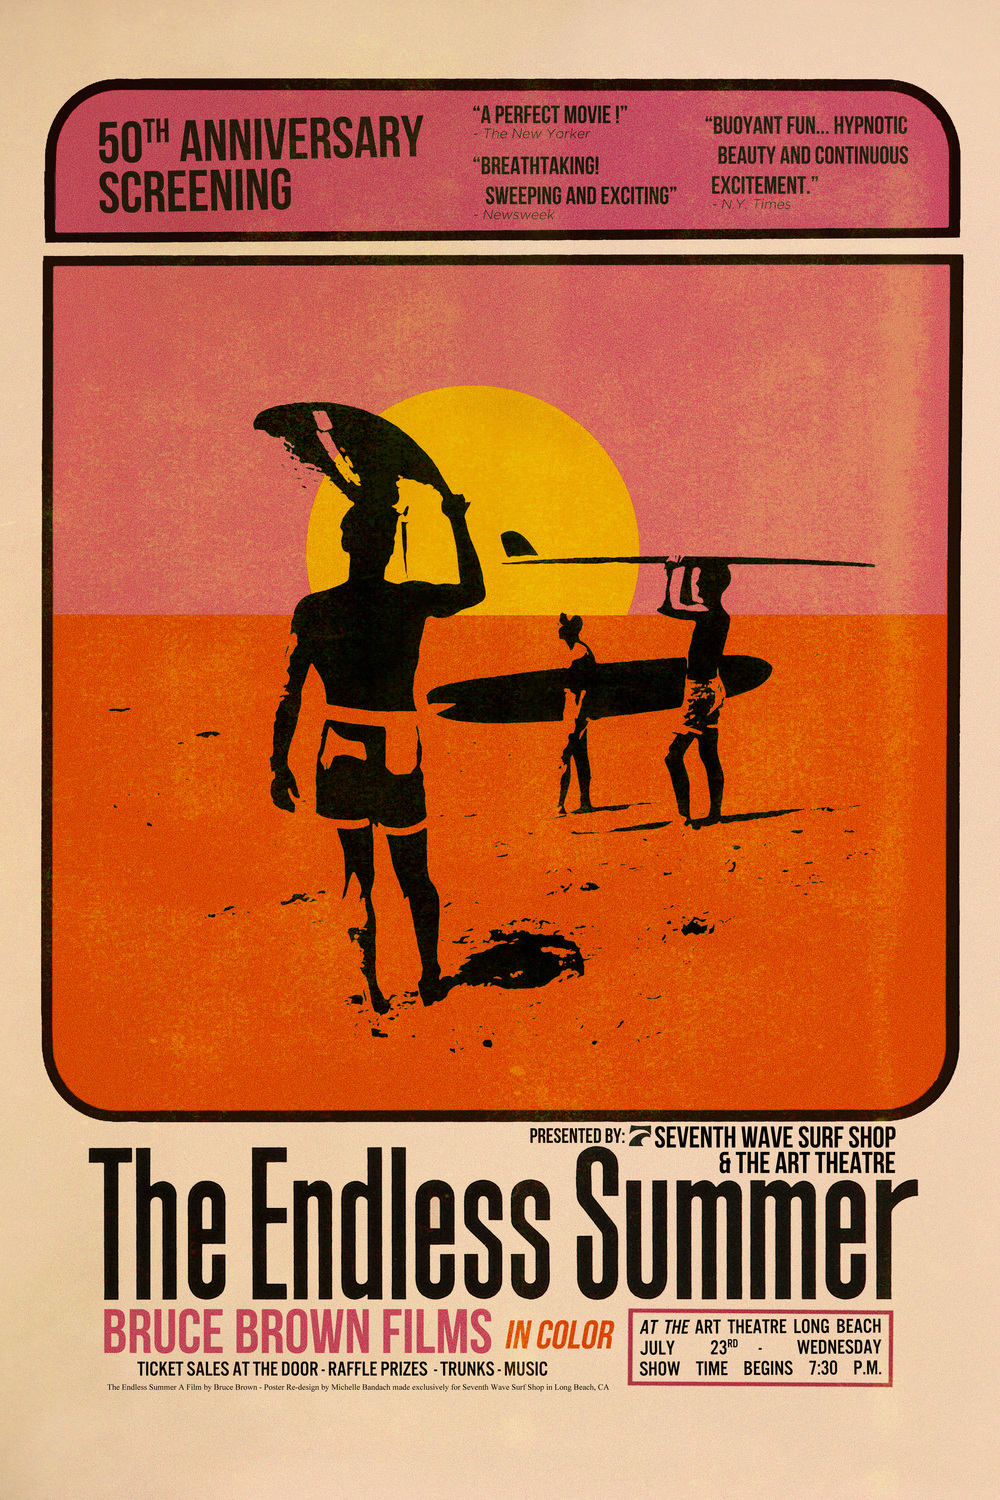 Hey all Long Beach people! Come check out the 50th anniversary screening of The Endless Summer at The Art Theater in Long Beach on July 23rd at 7:30pm.  Additional raffle ticket purchase proceeds go to the Surfrider Foundation Long Beach Chapter.